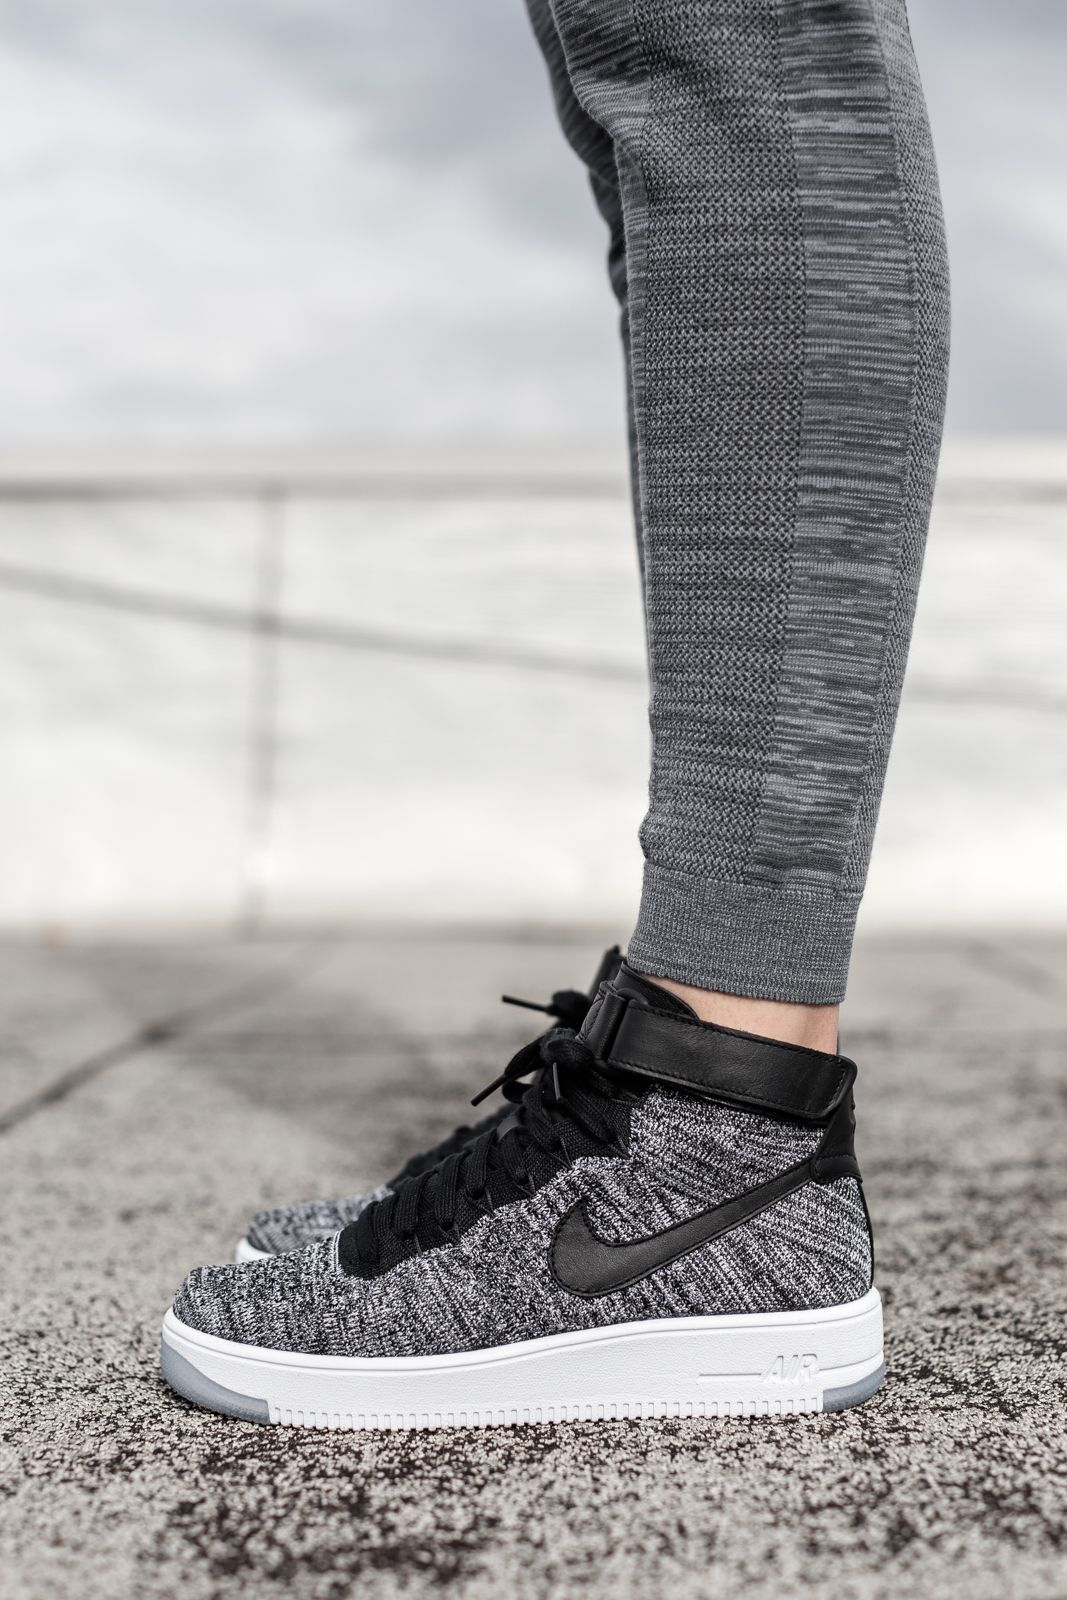 Nike Tech Knit   Air Force 1 Ultra Flyknit Editorial by Kith  8af23b8d6